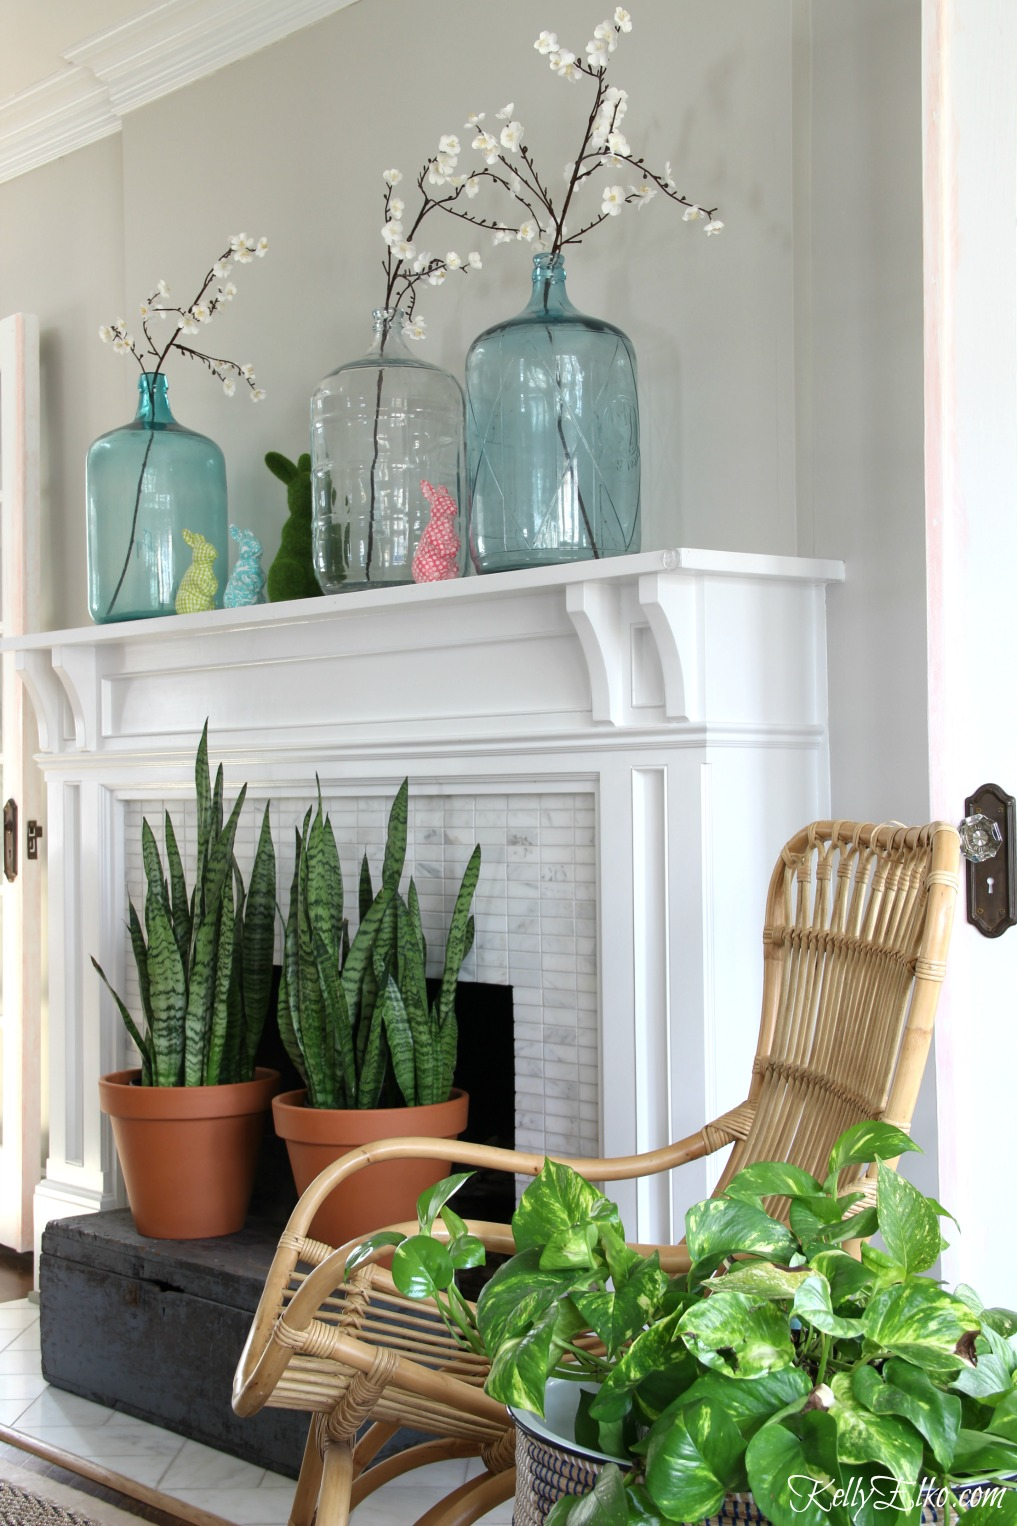 Spring Decorating Ideas - love this spring mantel with vintage demijohn jugs and colorful bunnies kellyelko.com #spring #springdecor #springmantel #vintagedecor #homedecor